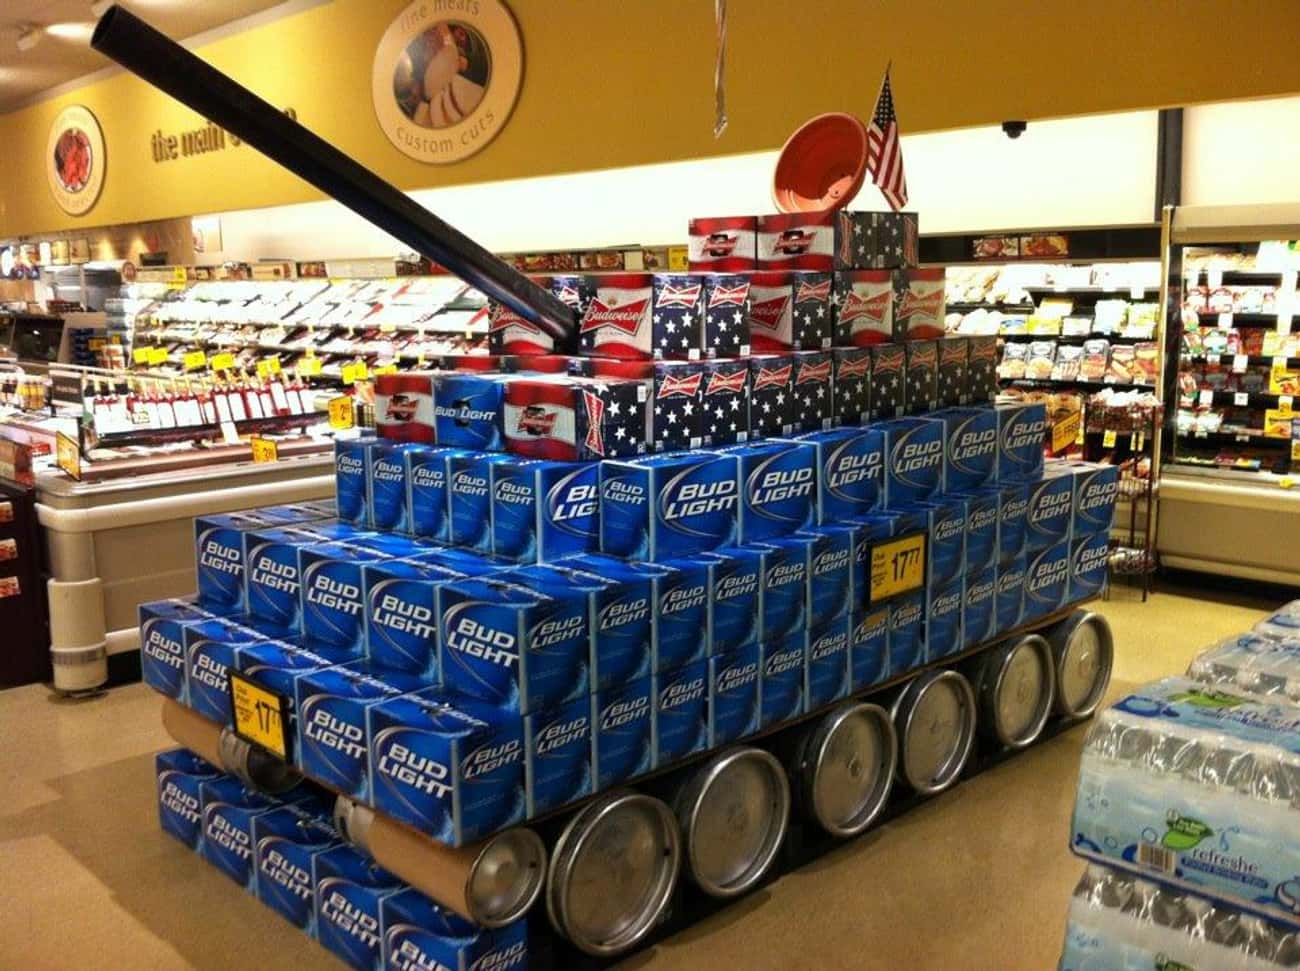 Beer Tank is listed (or ranked) 3 on the list The Most American Things That Have Ever Happened